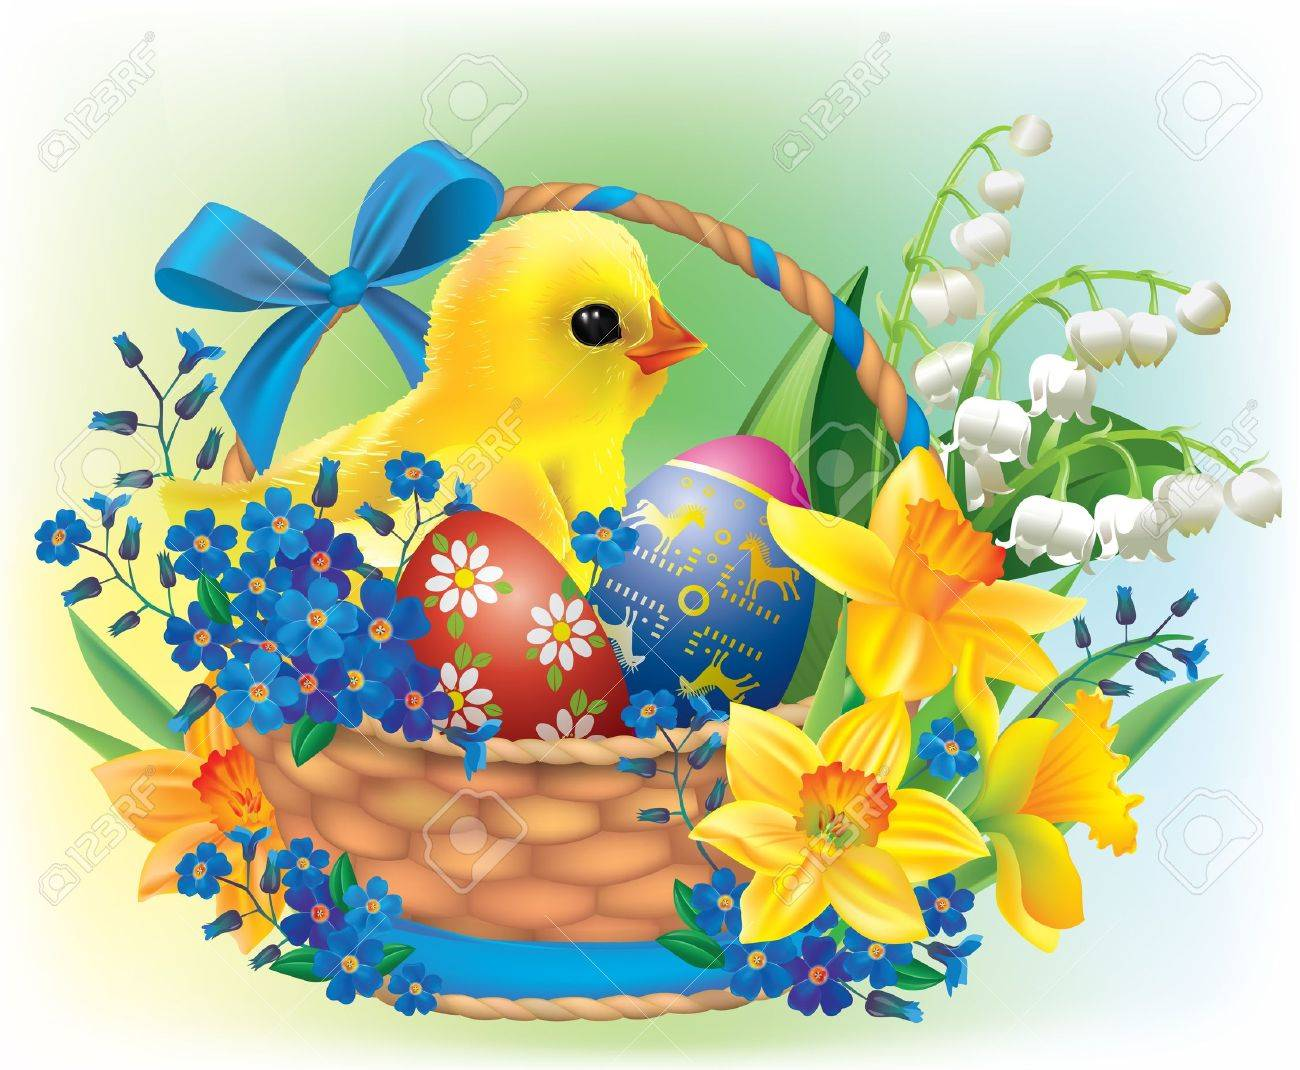 14 815 easter basket cliparts stock vector and royalty free